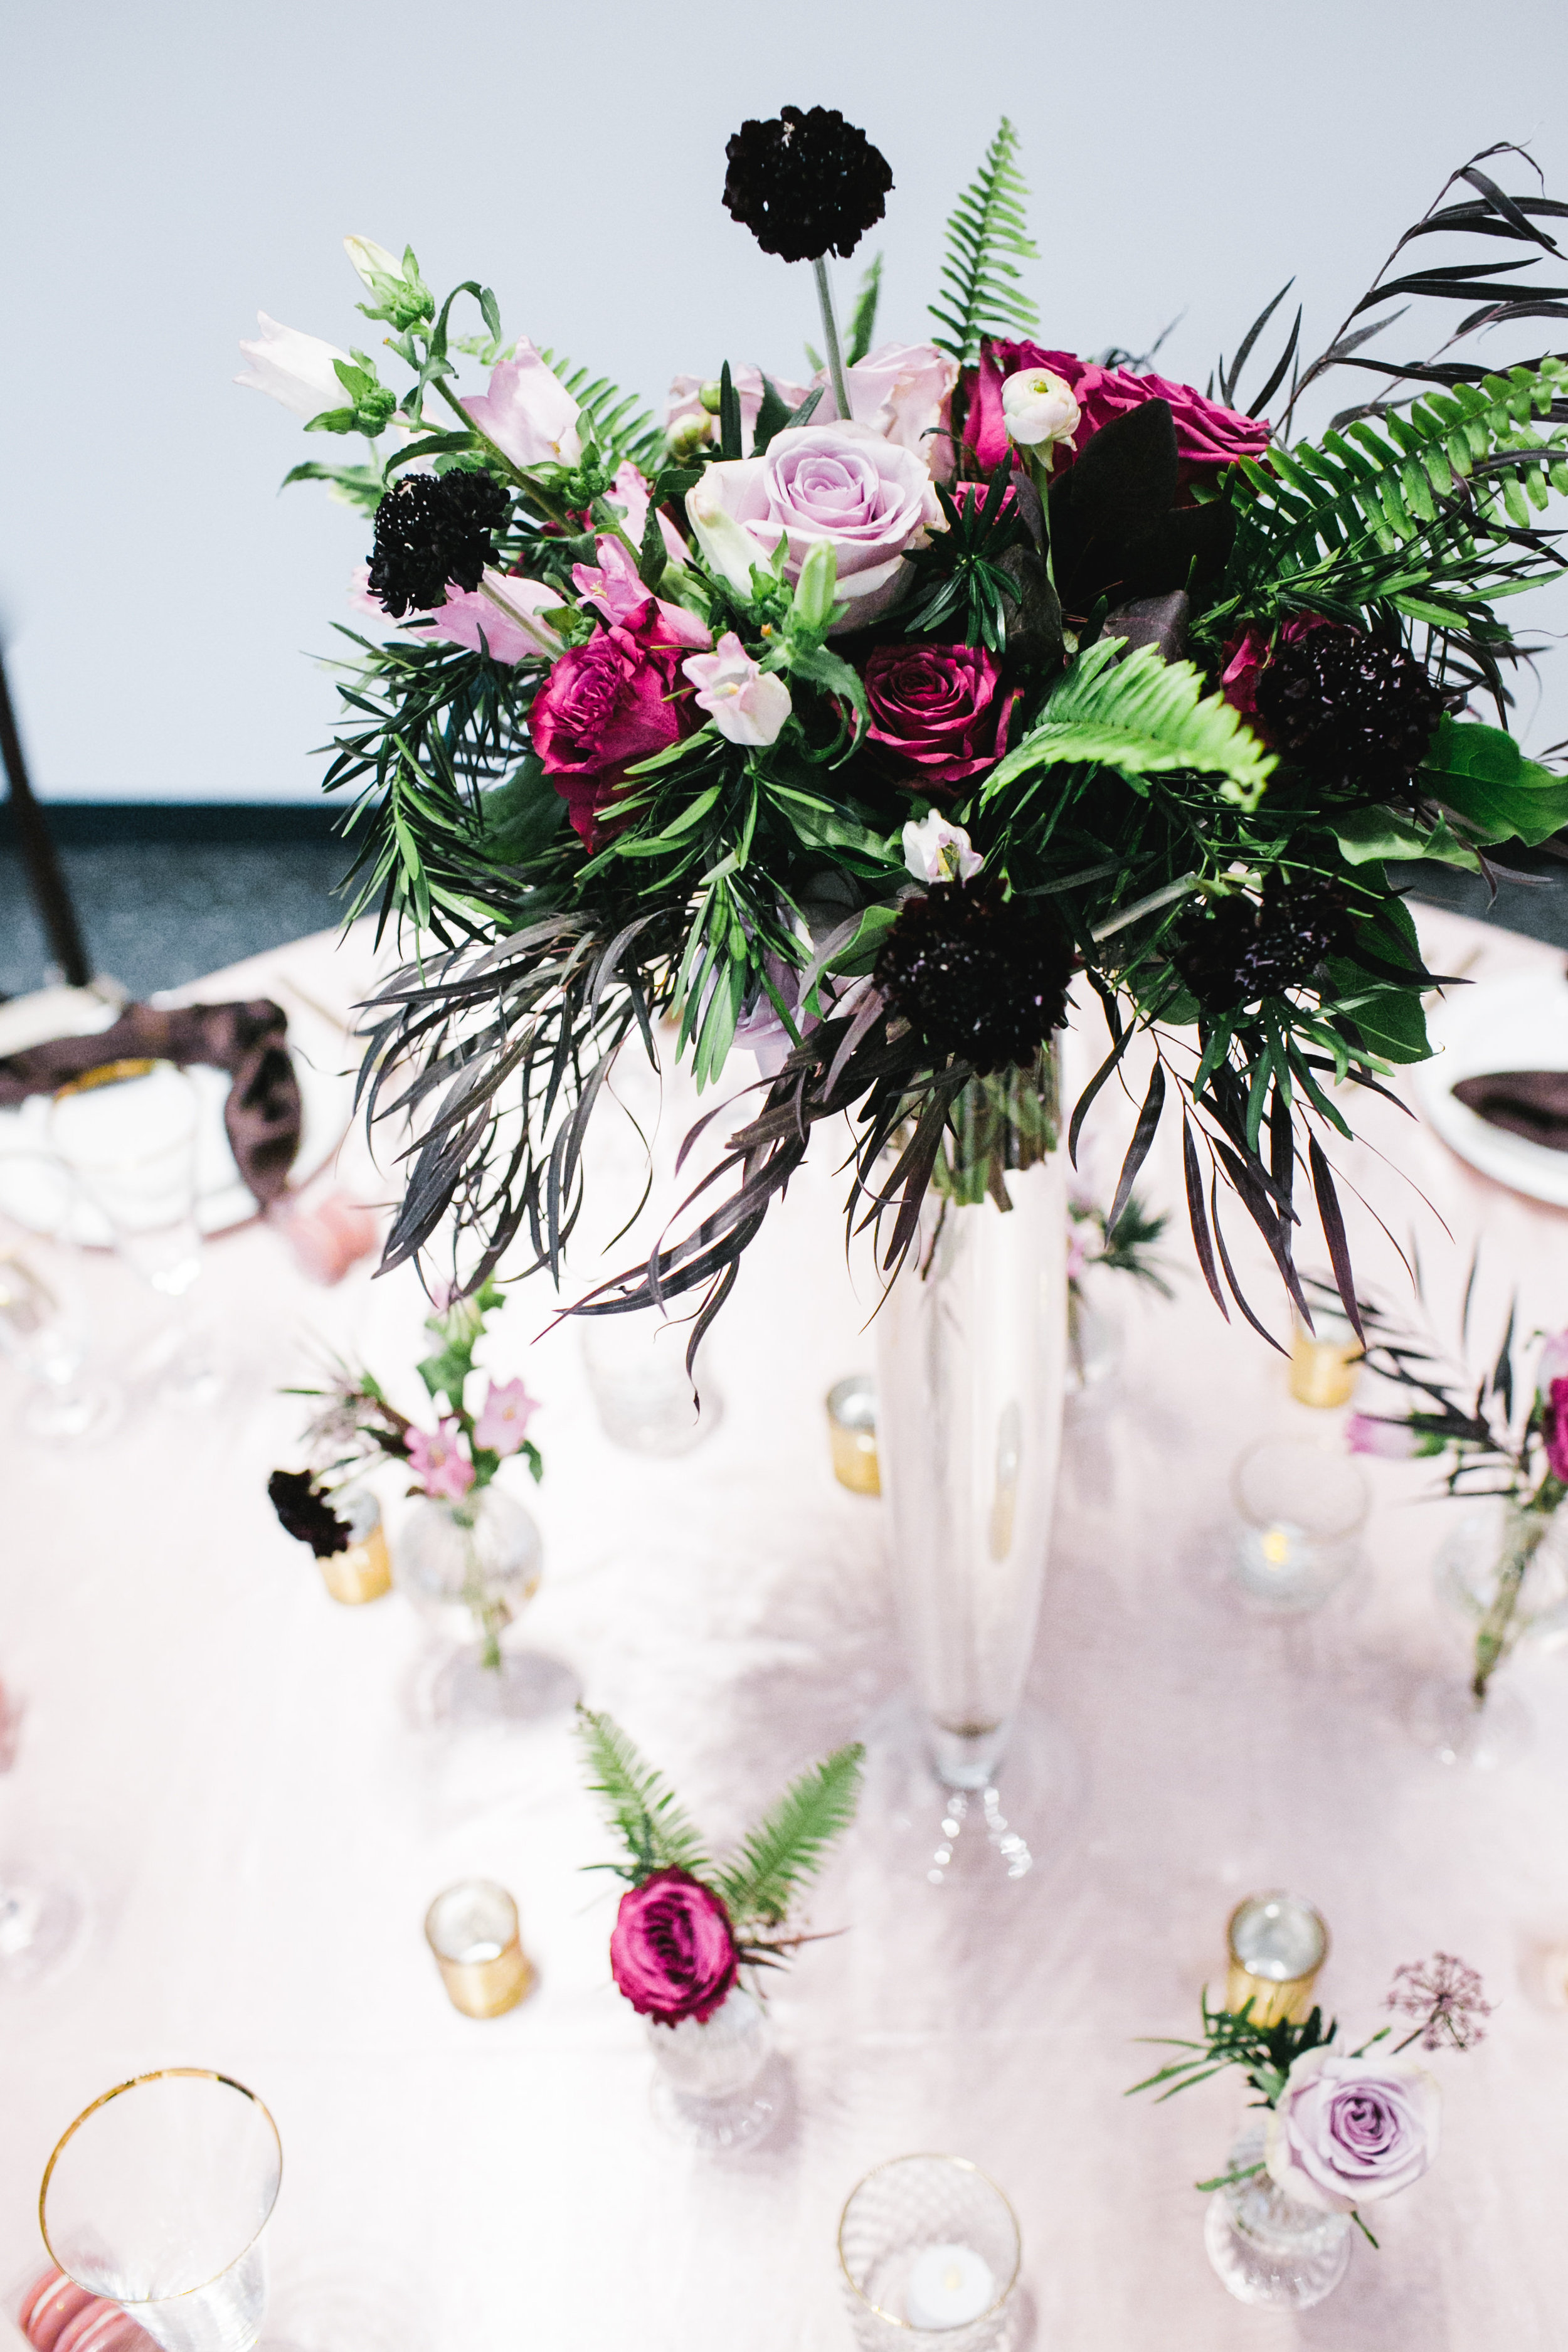 Garden Inspired Wedding Centrepieces - Berry Toned Wedding Flowers